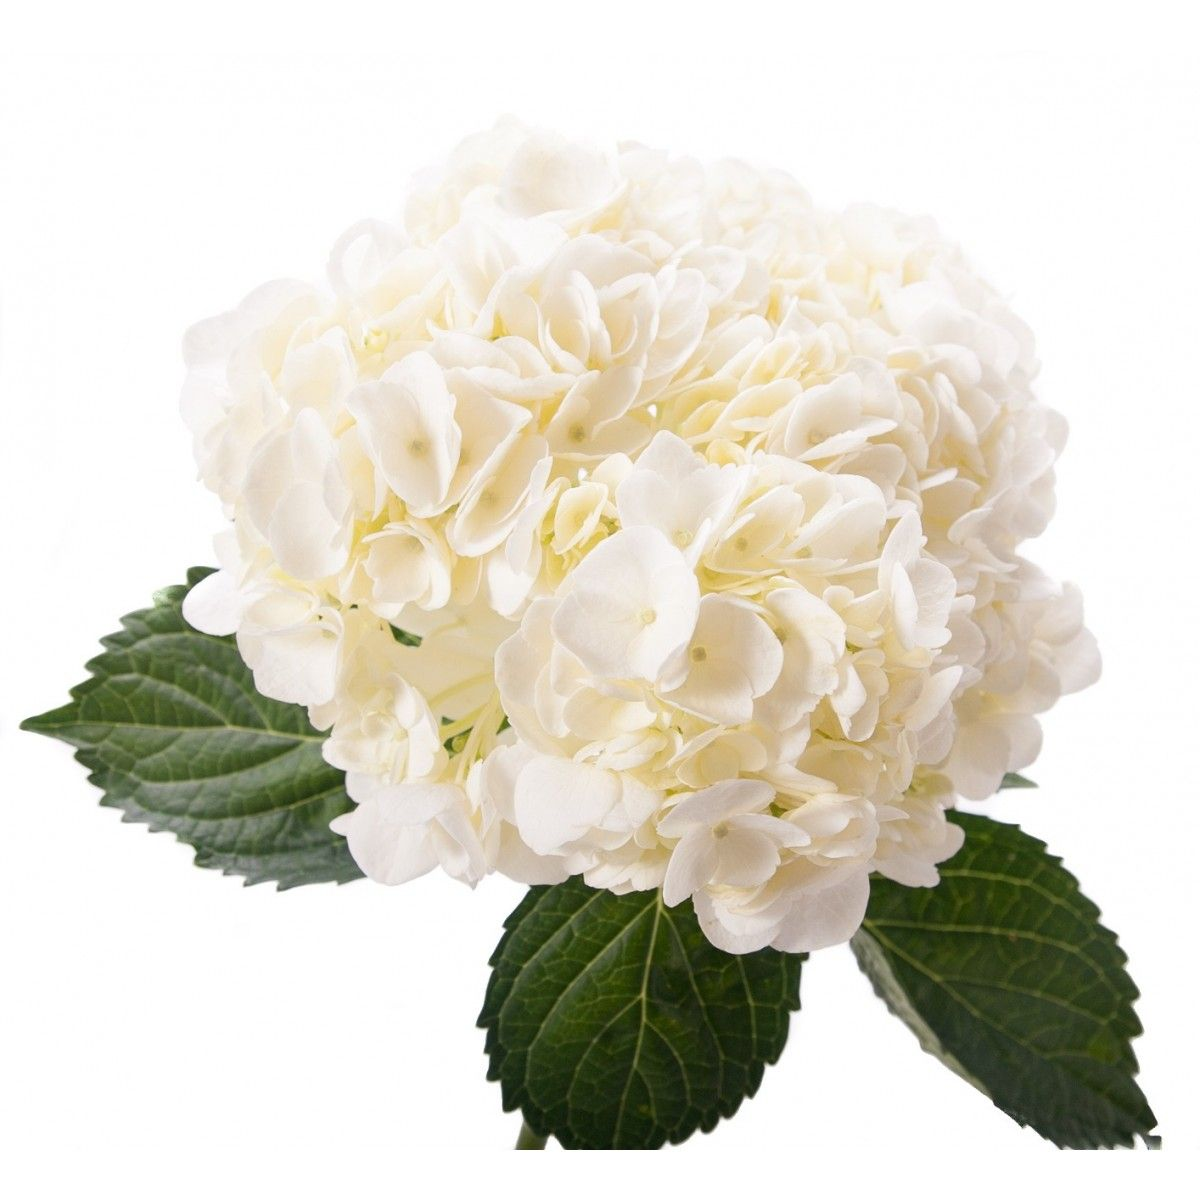 Wedding White Hydrangea: White Hydrangea- For Altar Arrangement Option 1